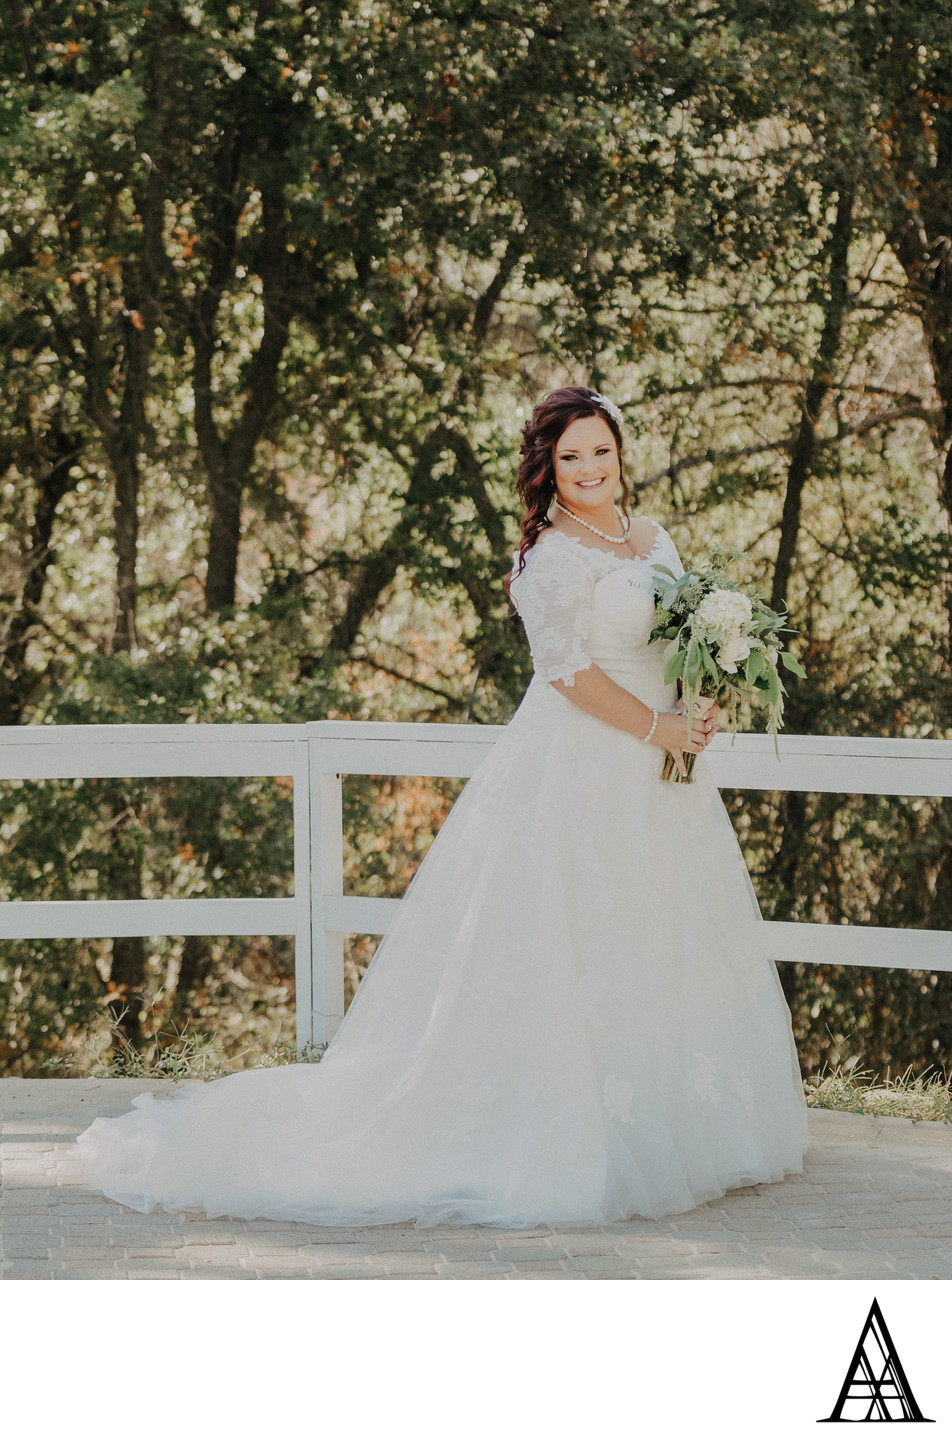 Lincoln Country Wedding Photographer from Sacramento